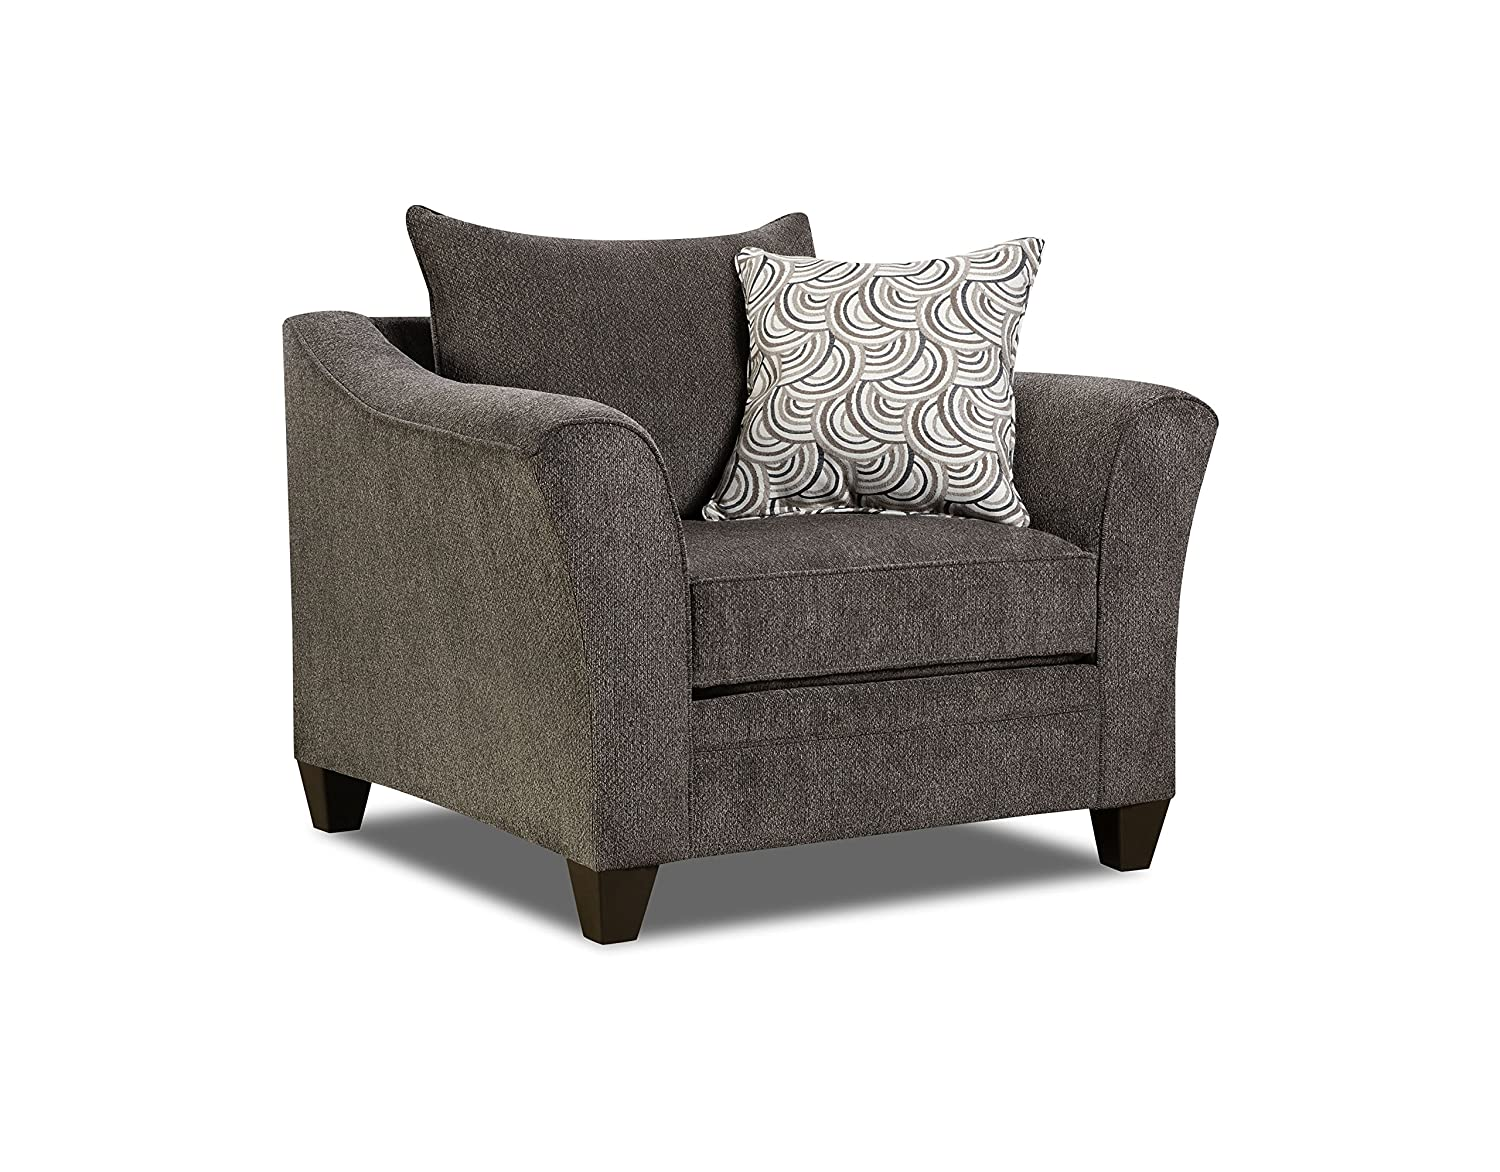 Amazon Com Simmons Upholstery 6485 01 Pewter Albany Chair Kitchen